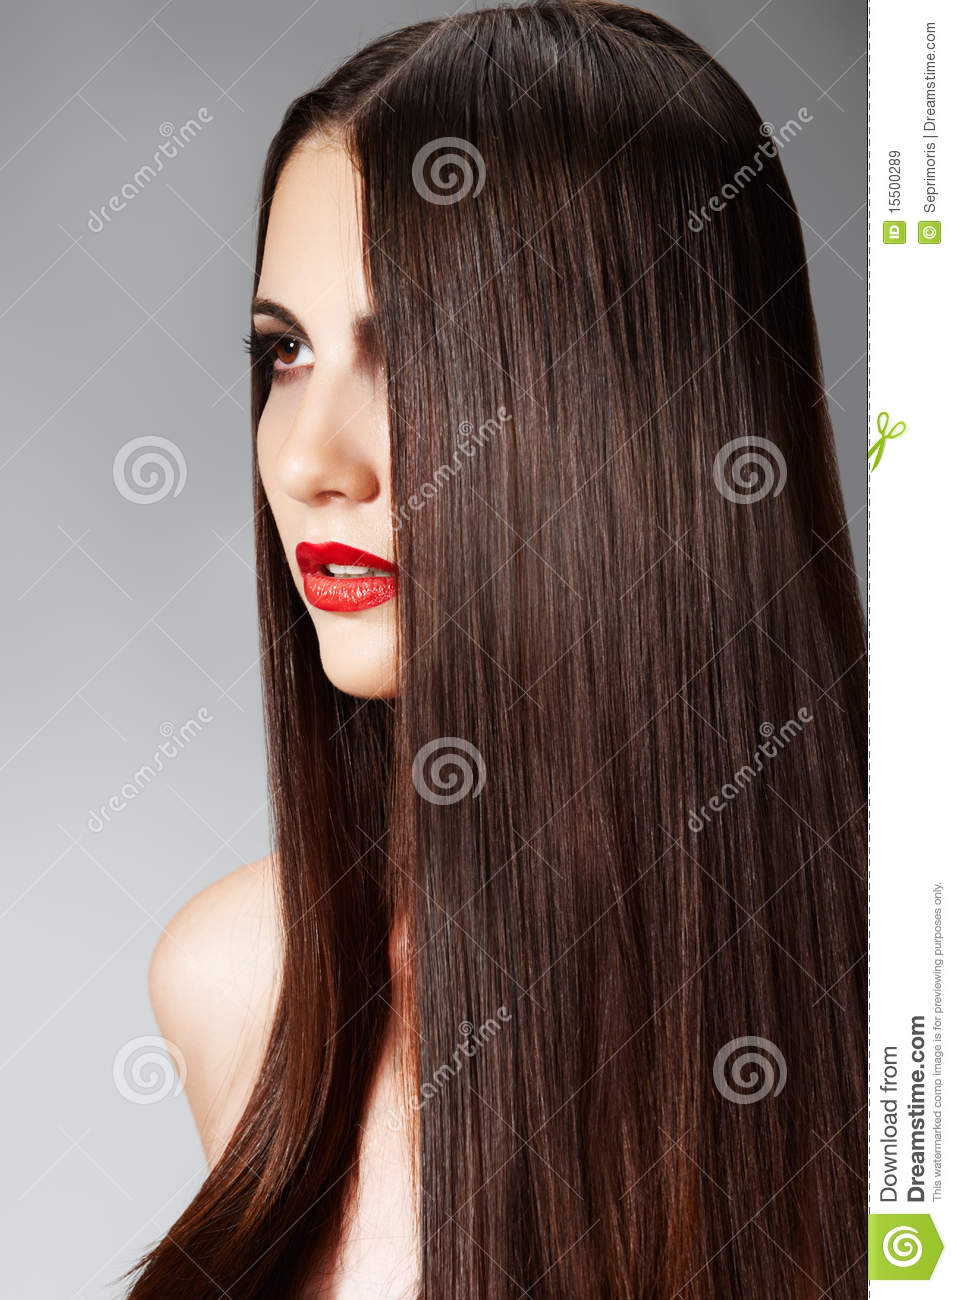 Fashion Hairstyle With Smooth Long Female Hair Royalty